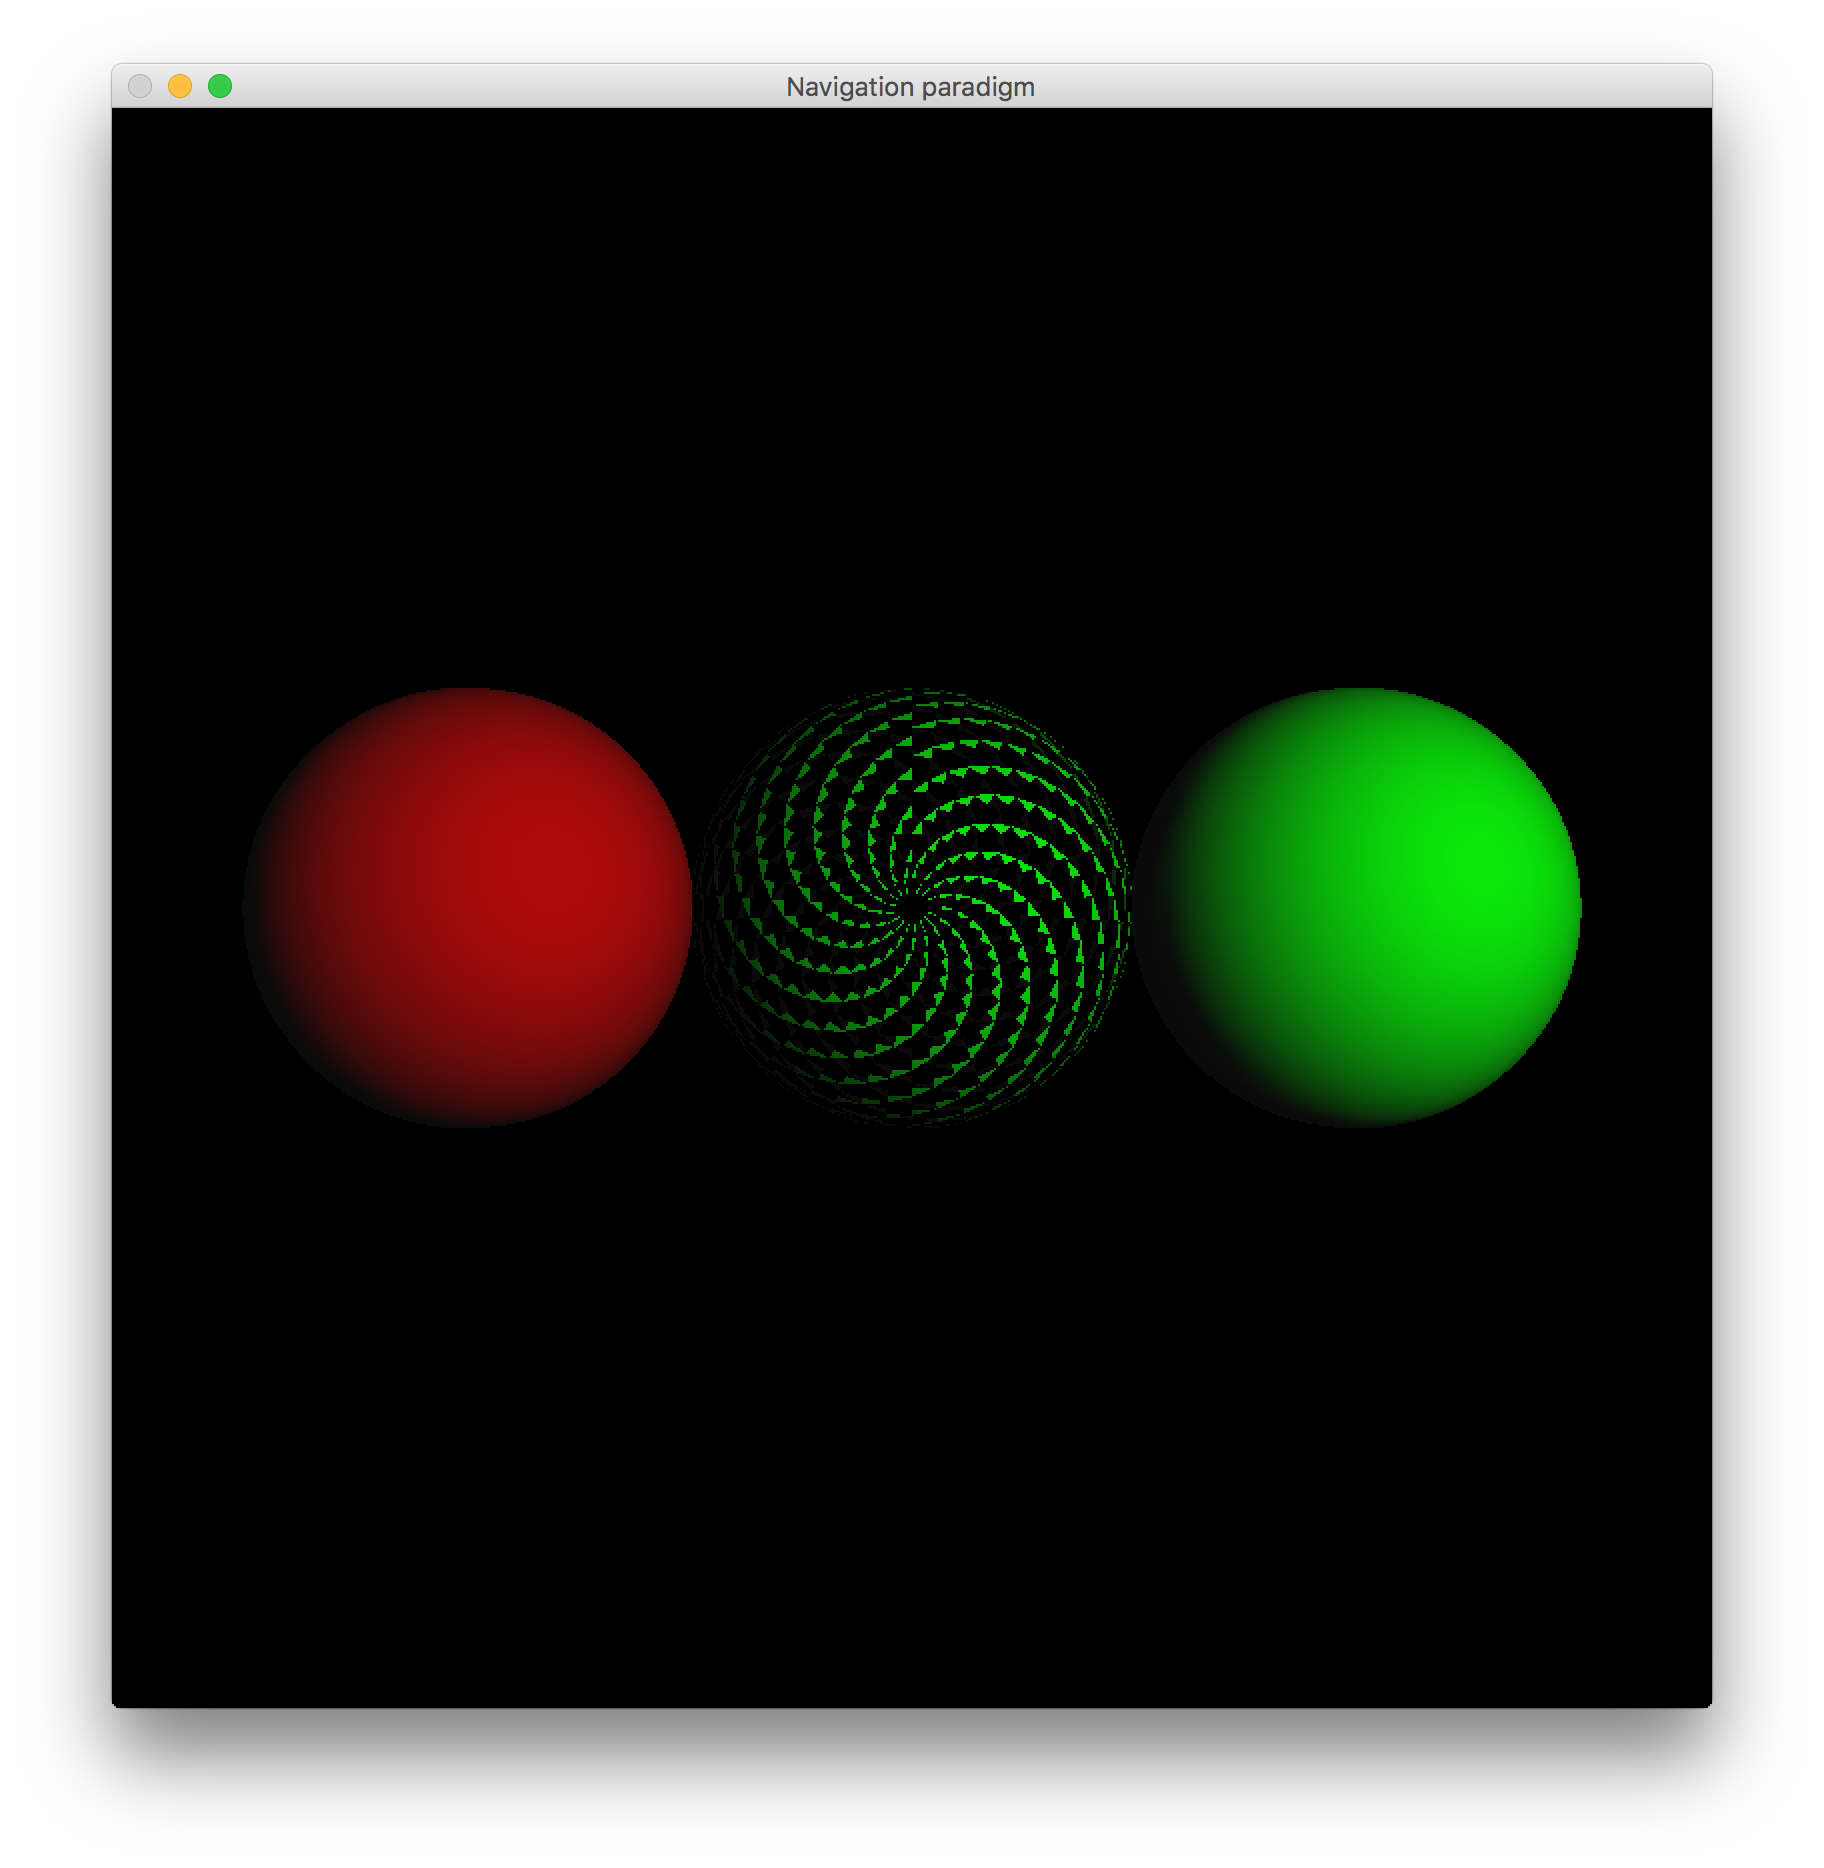 Opengl transparent texture. Python pyopengl sphere with